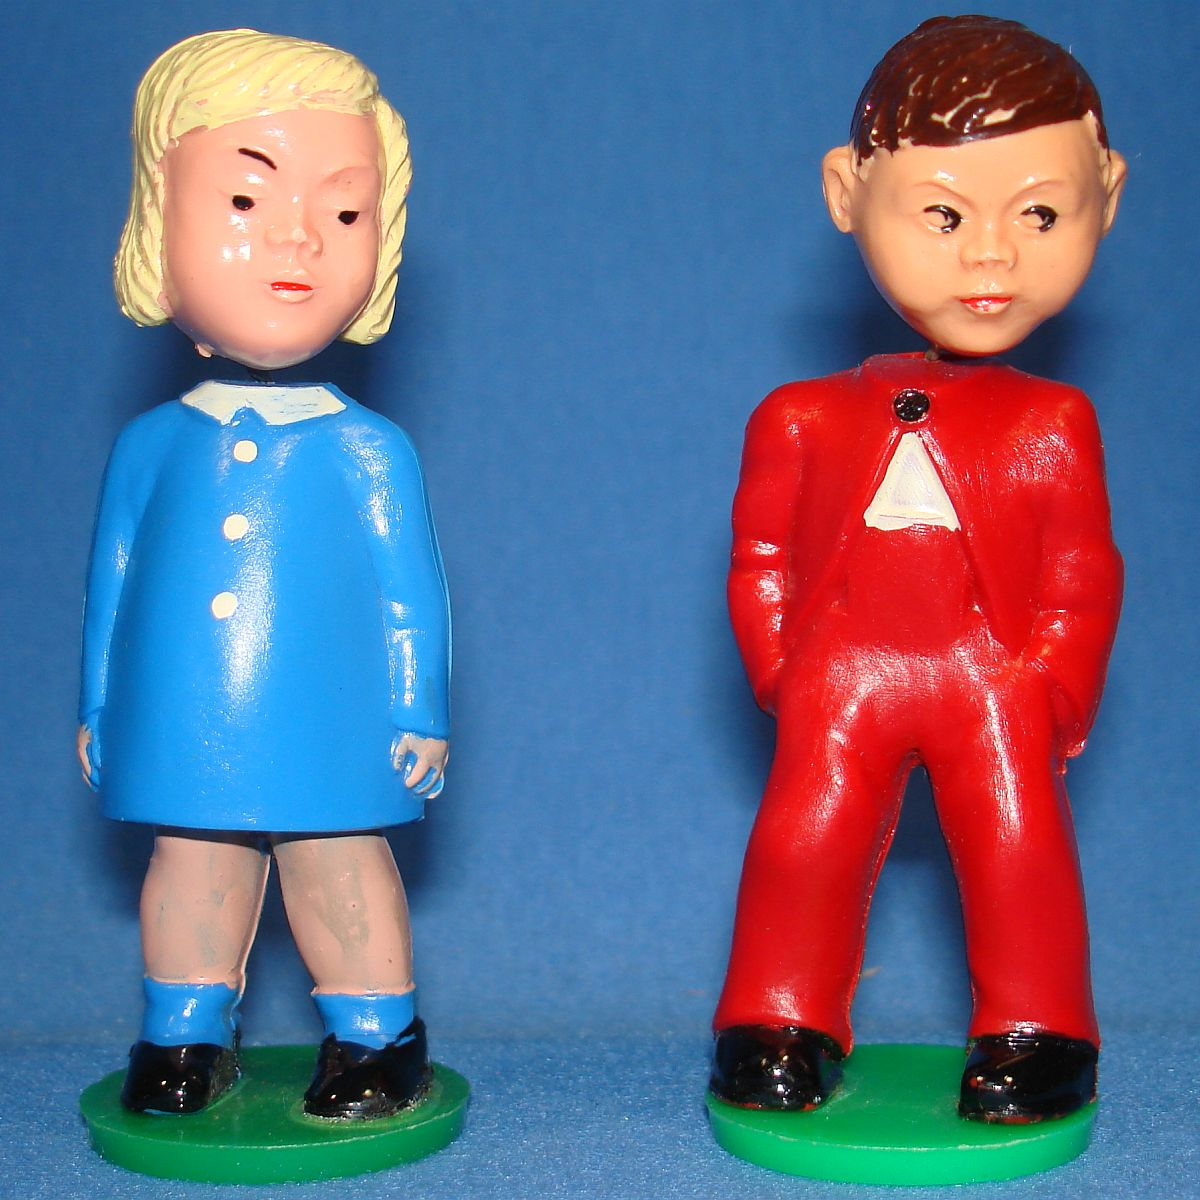 Vintage Nodders Made In Western Germany Magneto Patented Girl & Boy Couple Standing